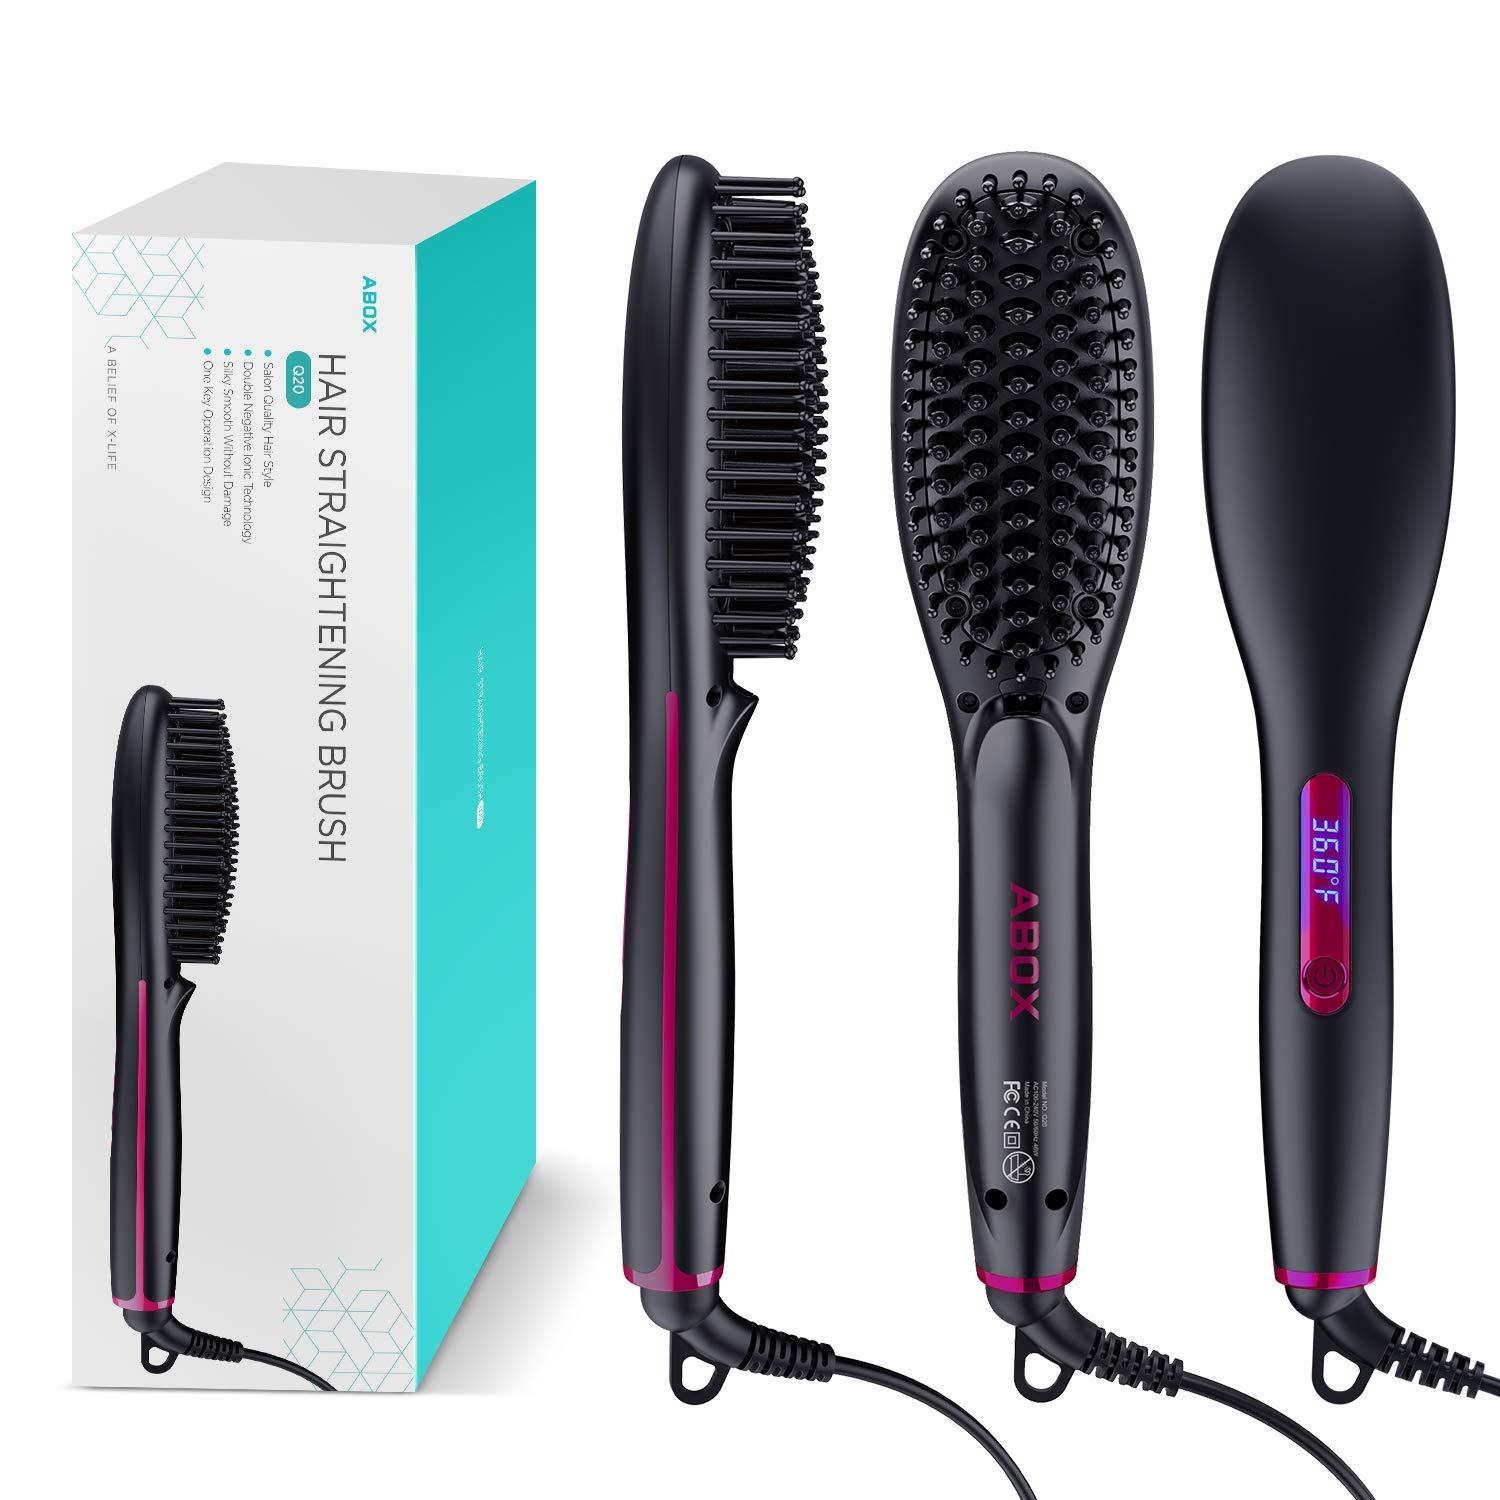 Hair Straightener Brush, ABOX Electric Ionic Hair Straightening Brush, PTC Straightener Comb with Anti-Scald Feature, LED Display + Adjustable Temperatures, Auto Temperature Lock and Auto-Off Function by ABOX